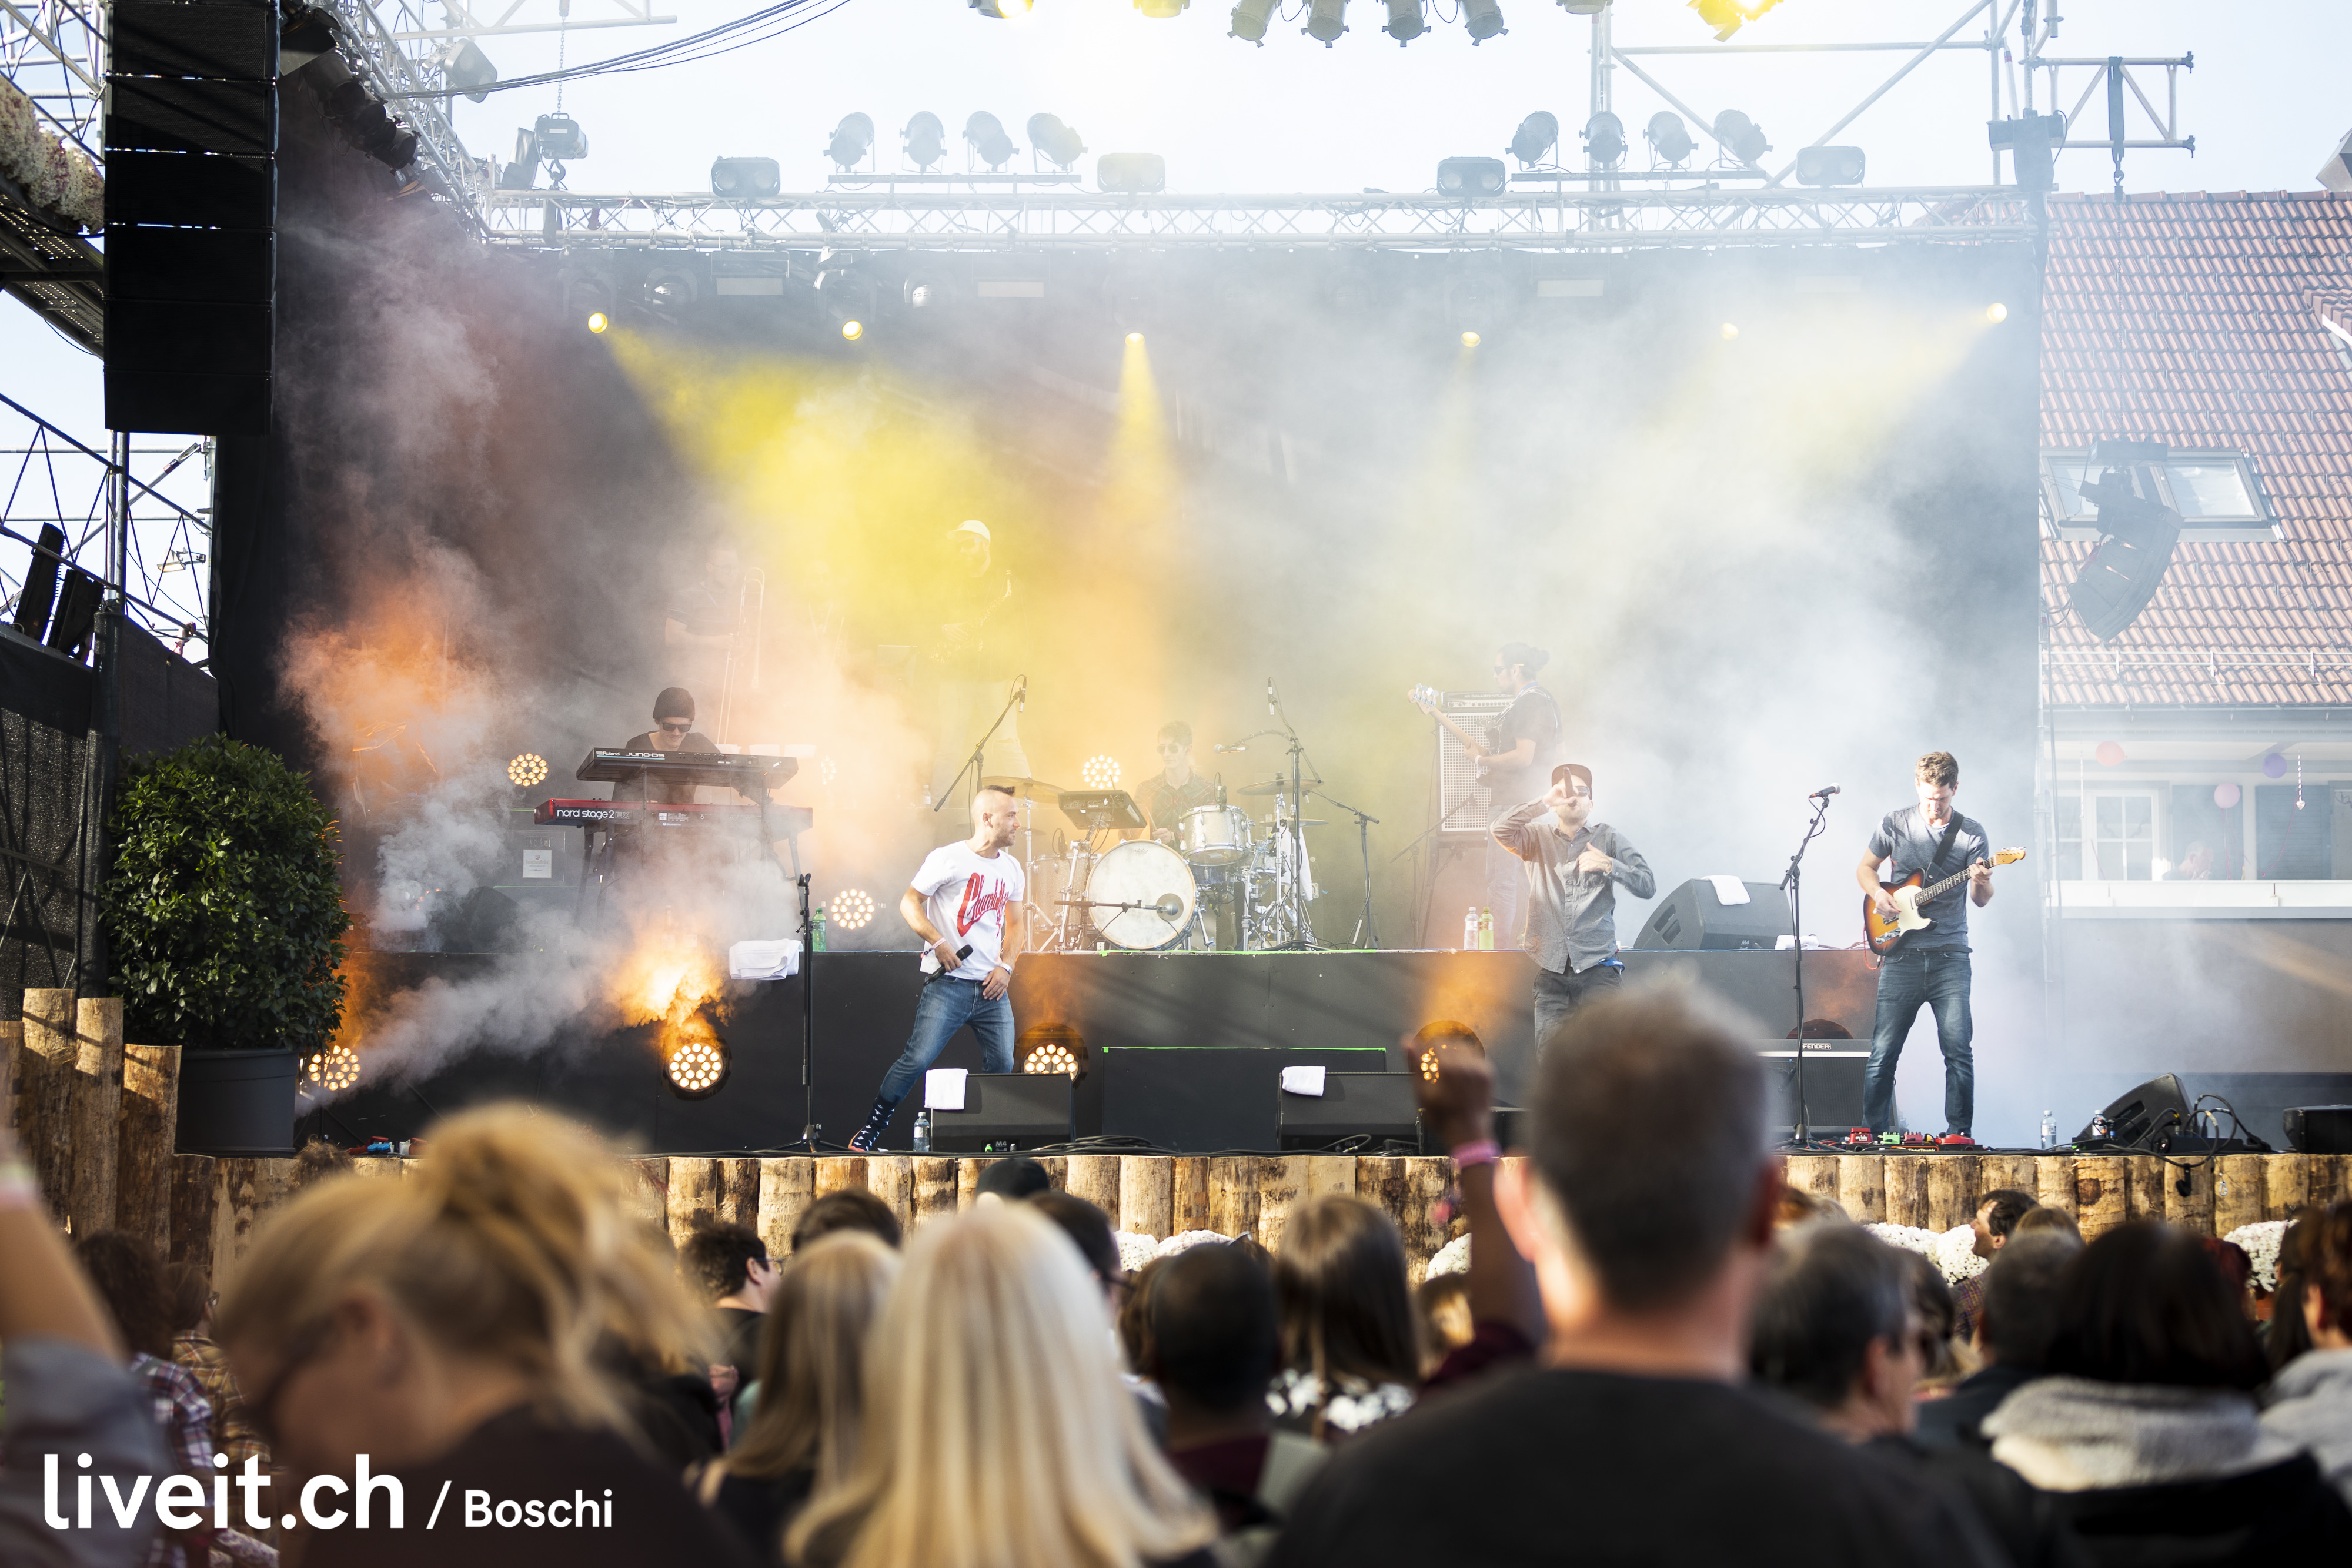 Churchhill am Herbstigal 2019 in Steffisburg.(liveit.ch/boschi)